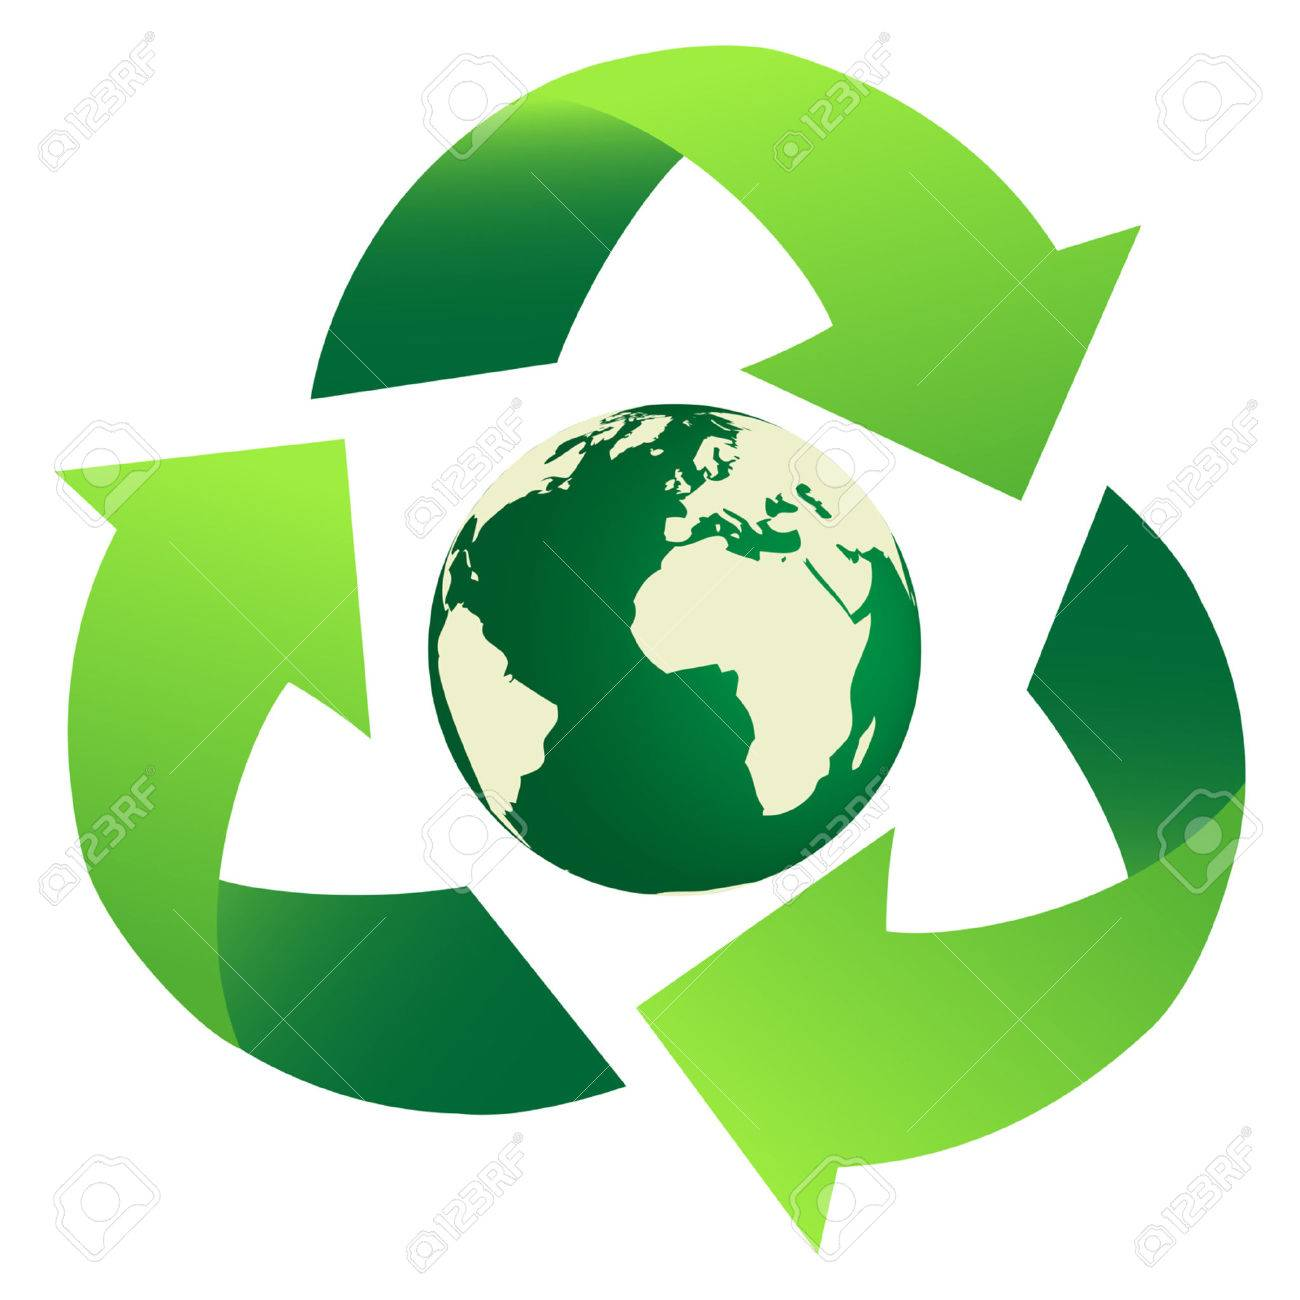 Recycling Earth Stock Vector - 4588916